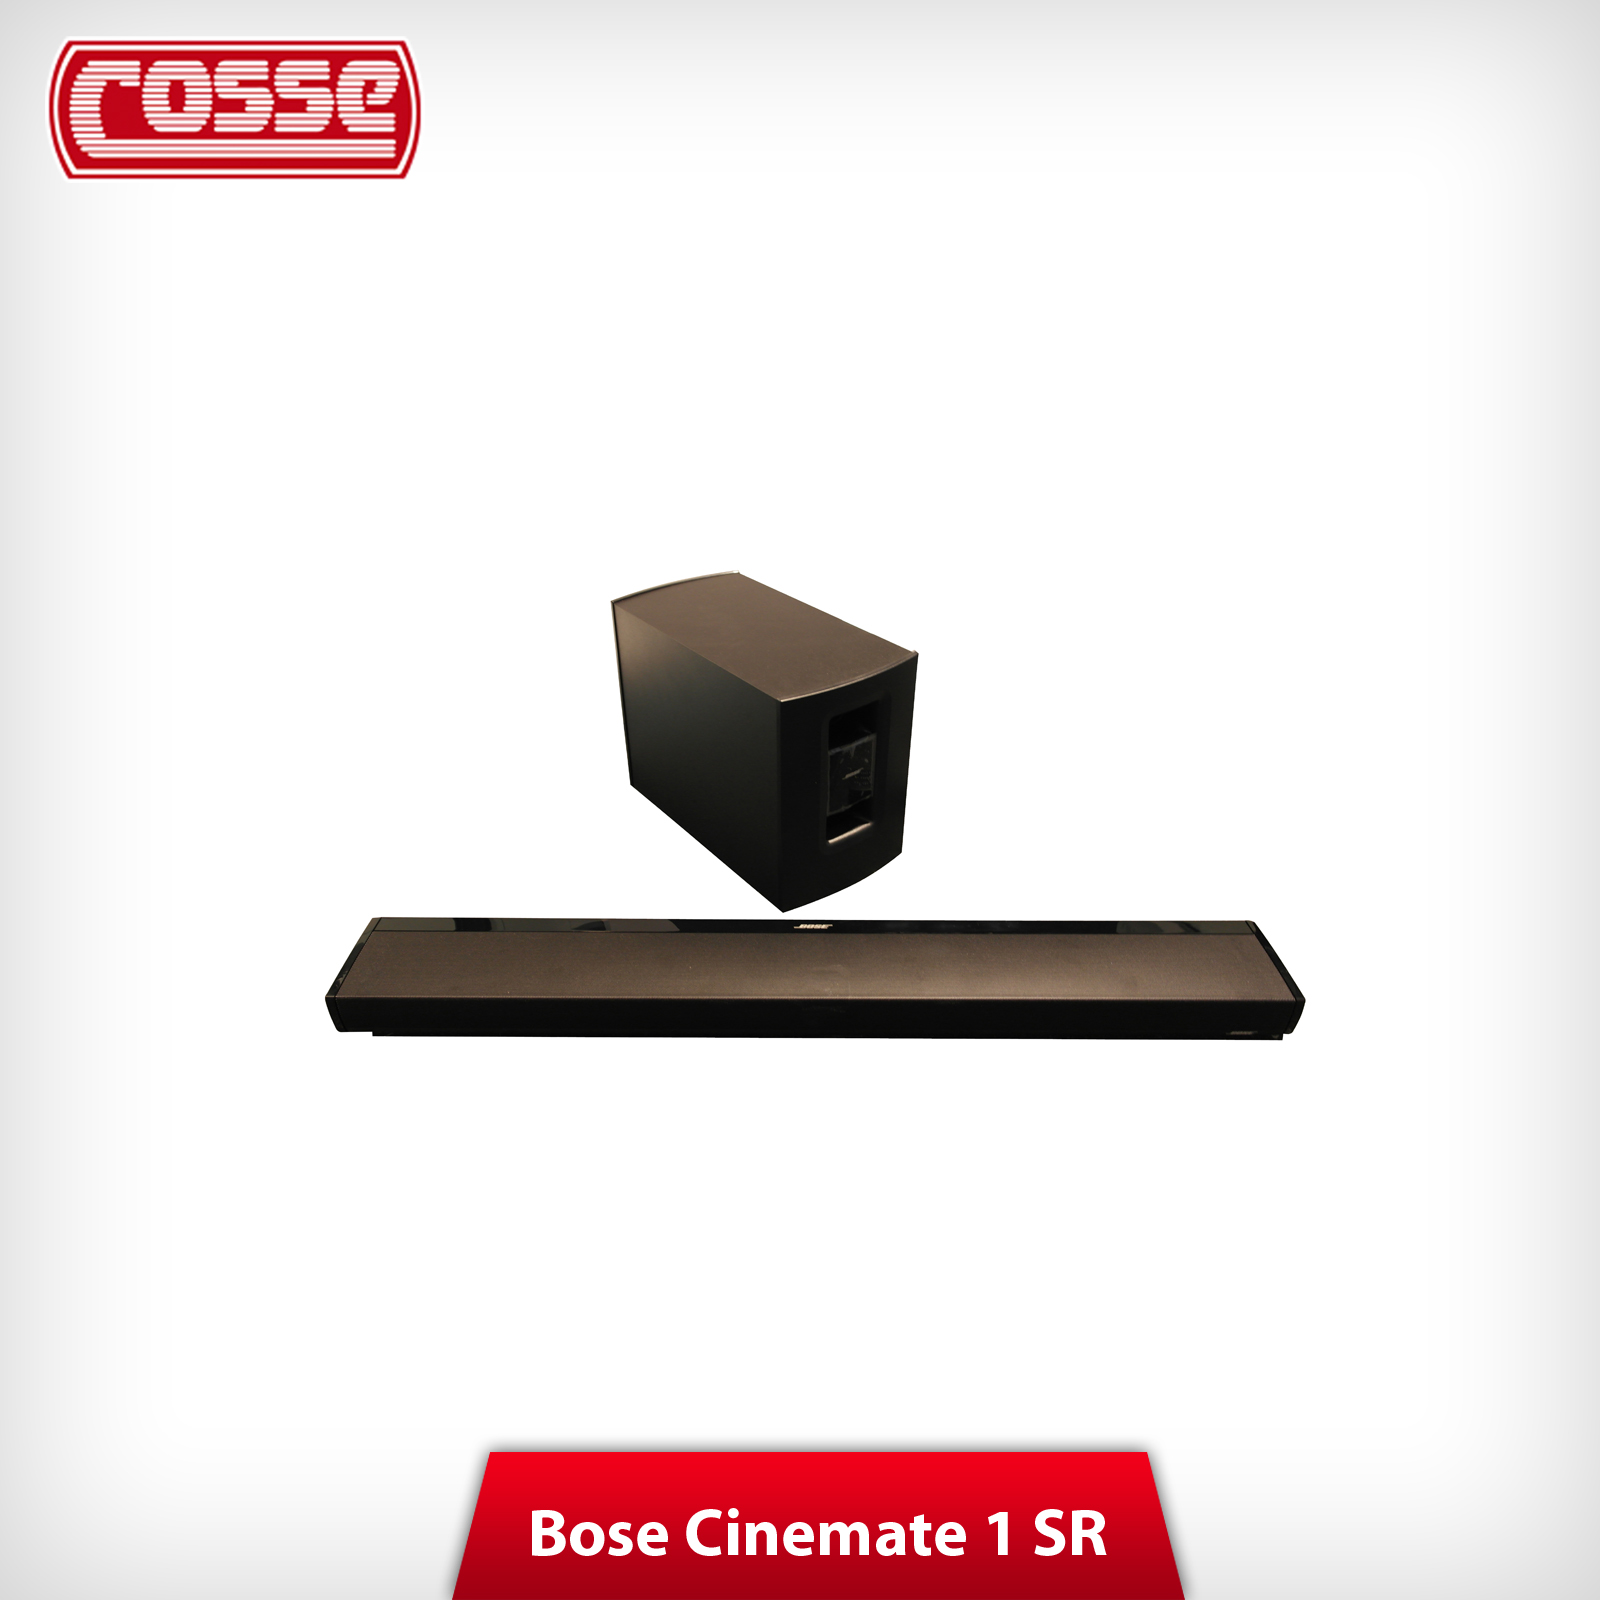 bose soundbar bing. Black Bedroom Furniture Sets. Home Design Ideas